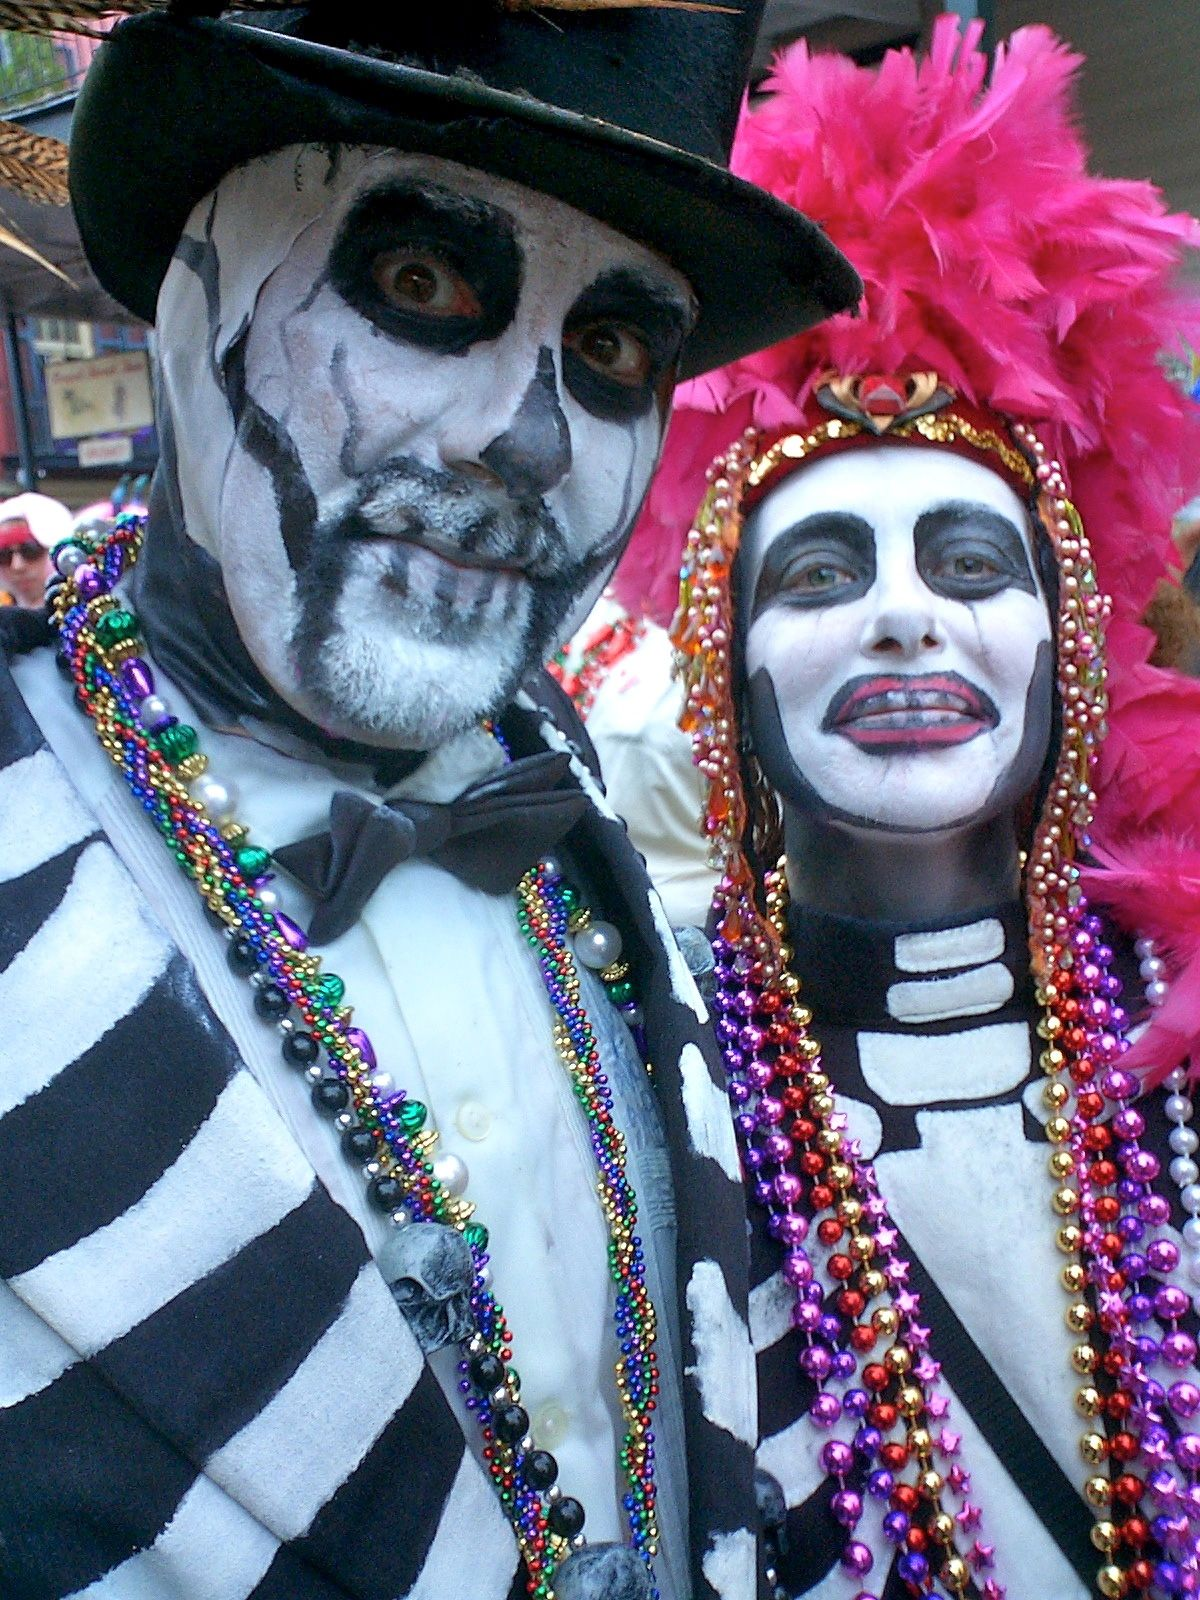 mardi gras dead new orleans mardi gras style and costumes pinterest nouvelle orl ans. Black Bedroom Furniture Sets. Home Design Ideas